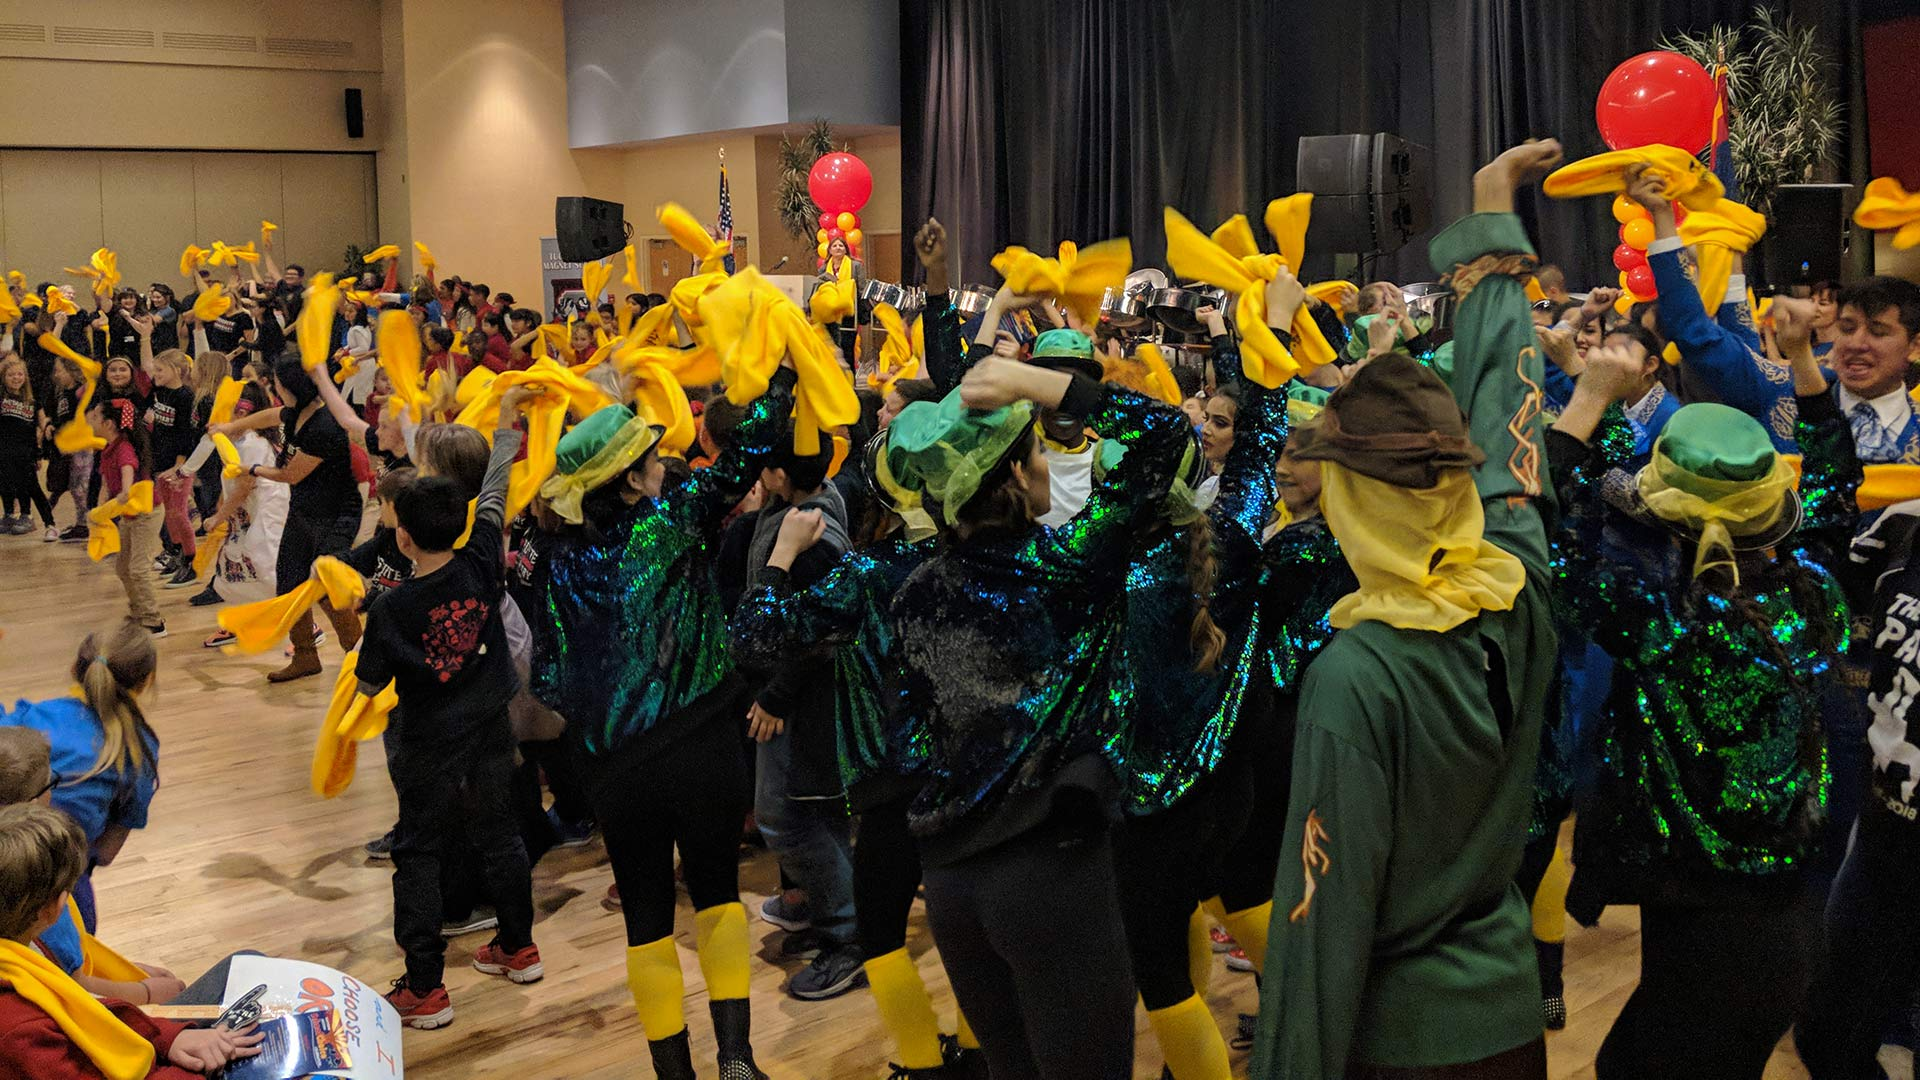 Students dance to wrap up a Jan. 23 event in Tucson celebrating National School Choice Week 2018.